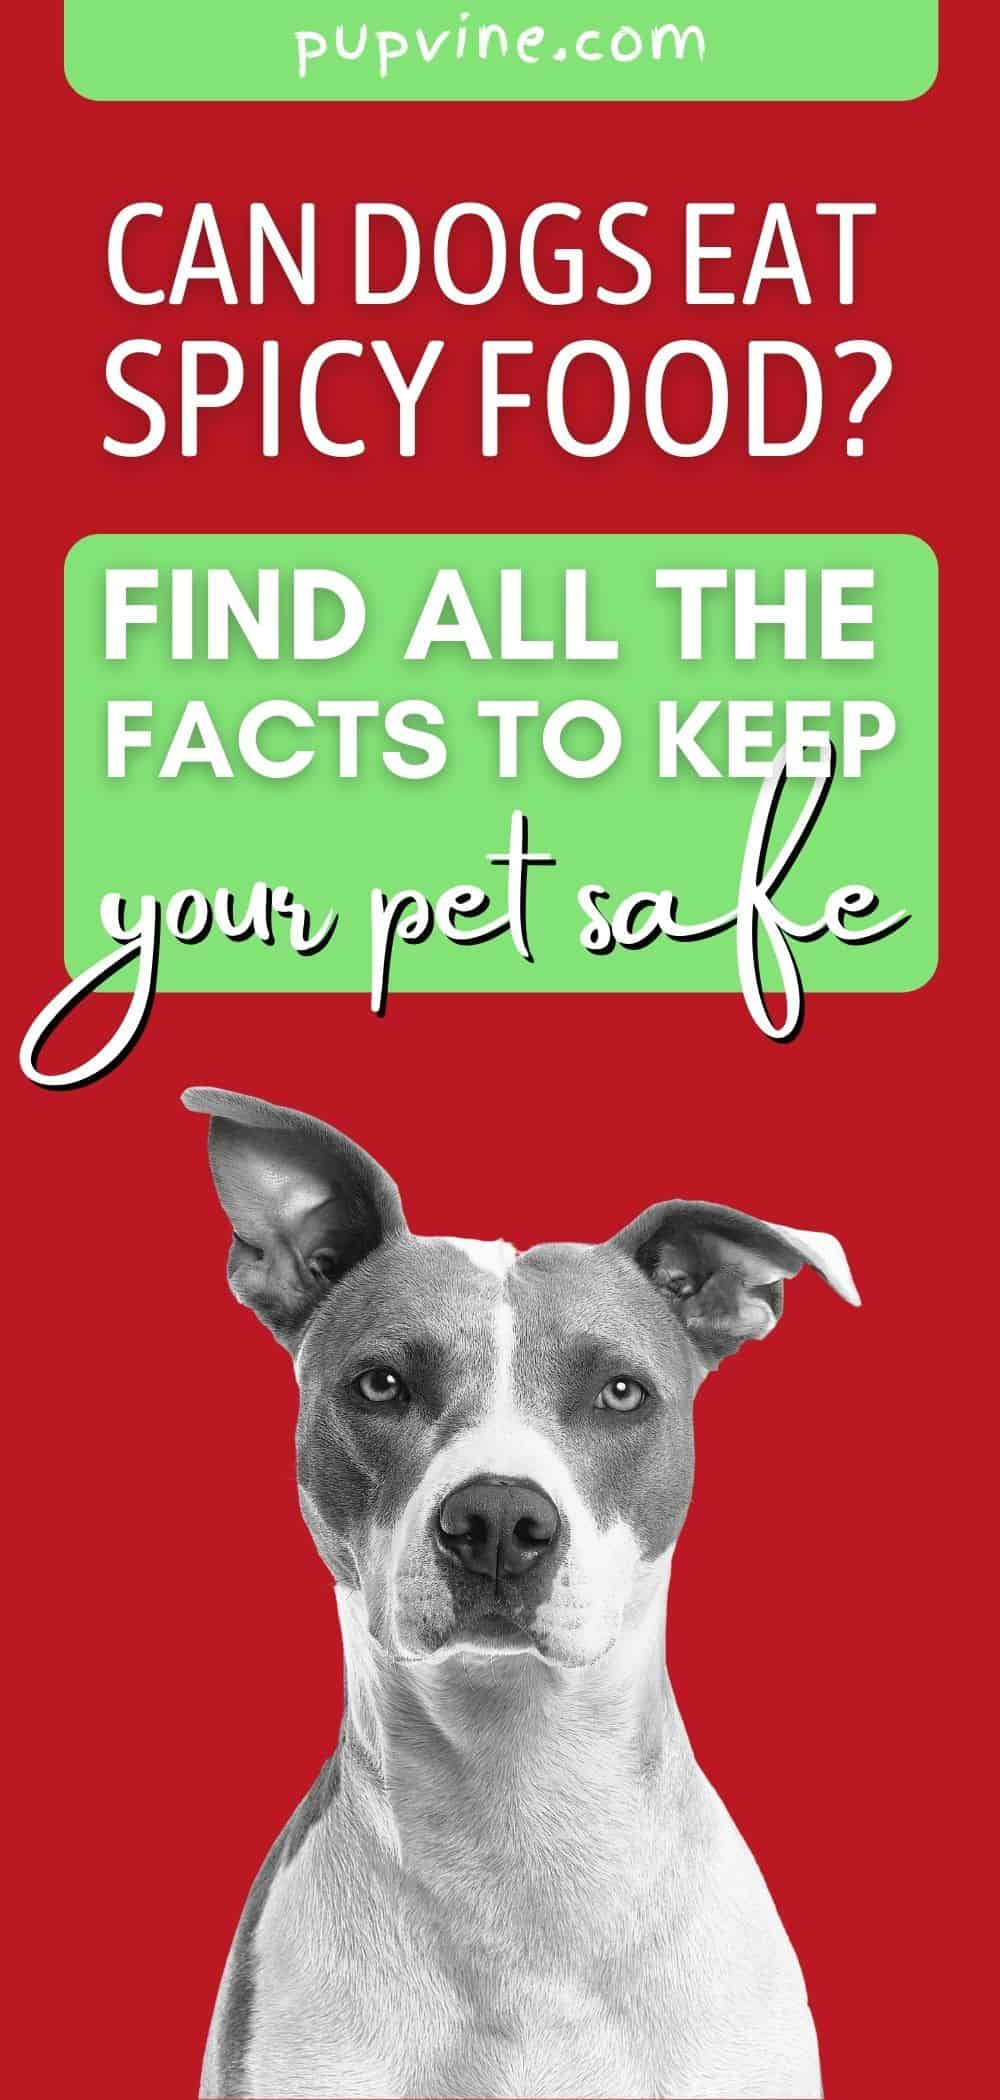 Can Dogs Eat Spicy Food? Find all the facts to keep your pet safe